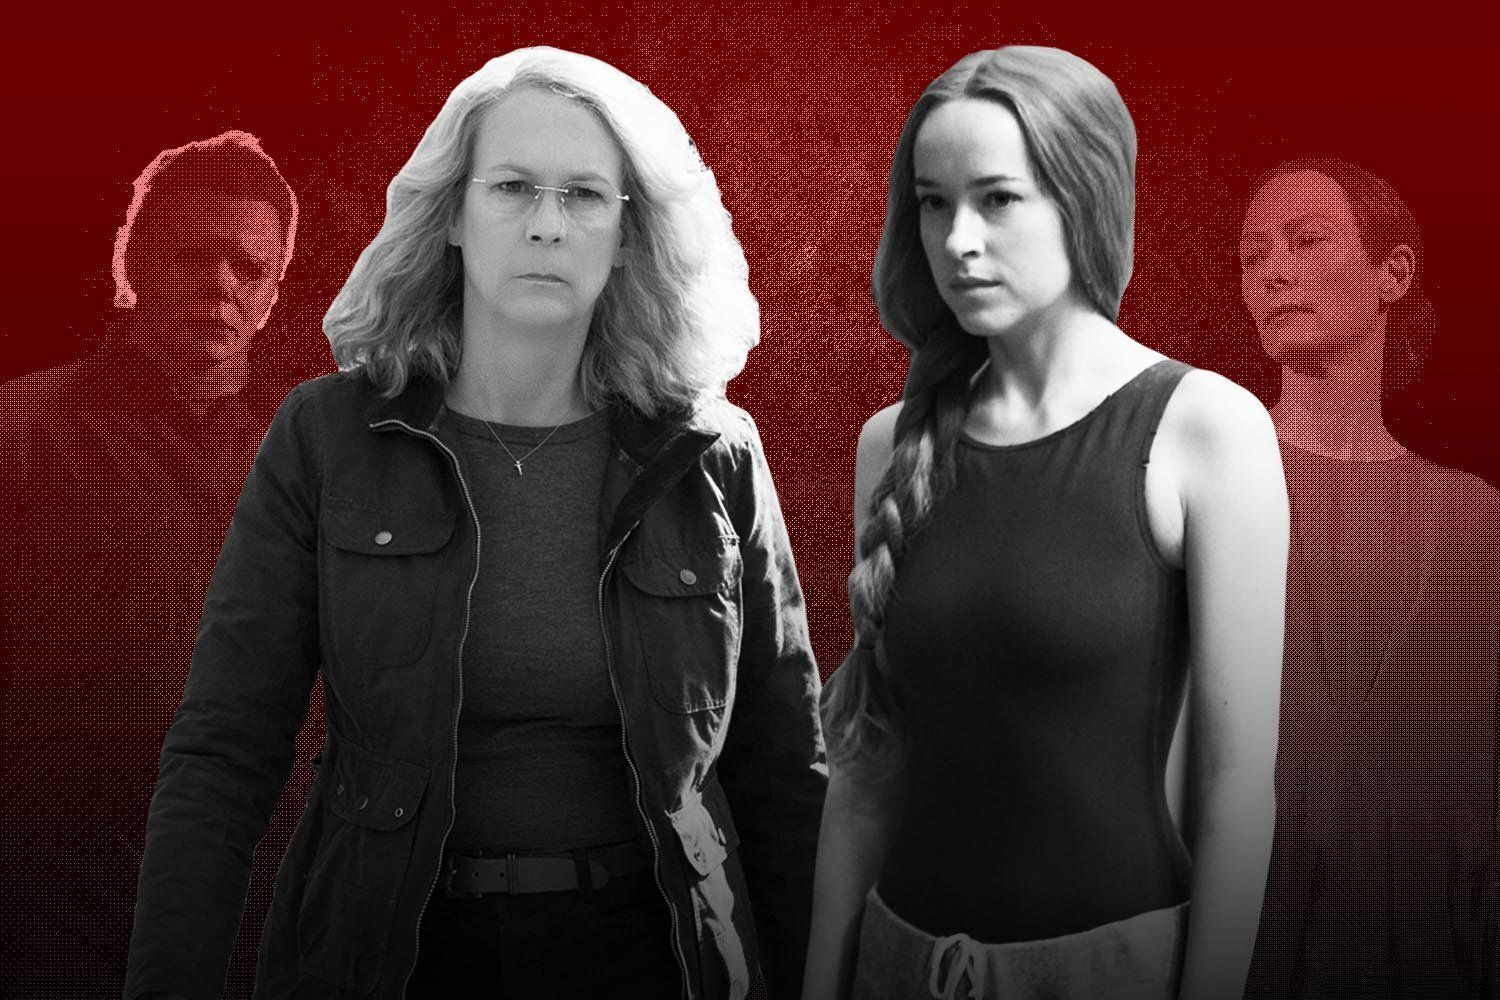 The Horror Returns: Inside The Shared Legacies Of 'Halloween' And